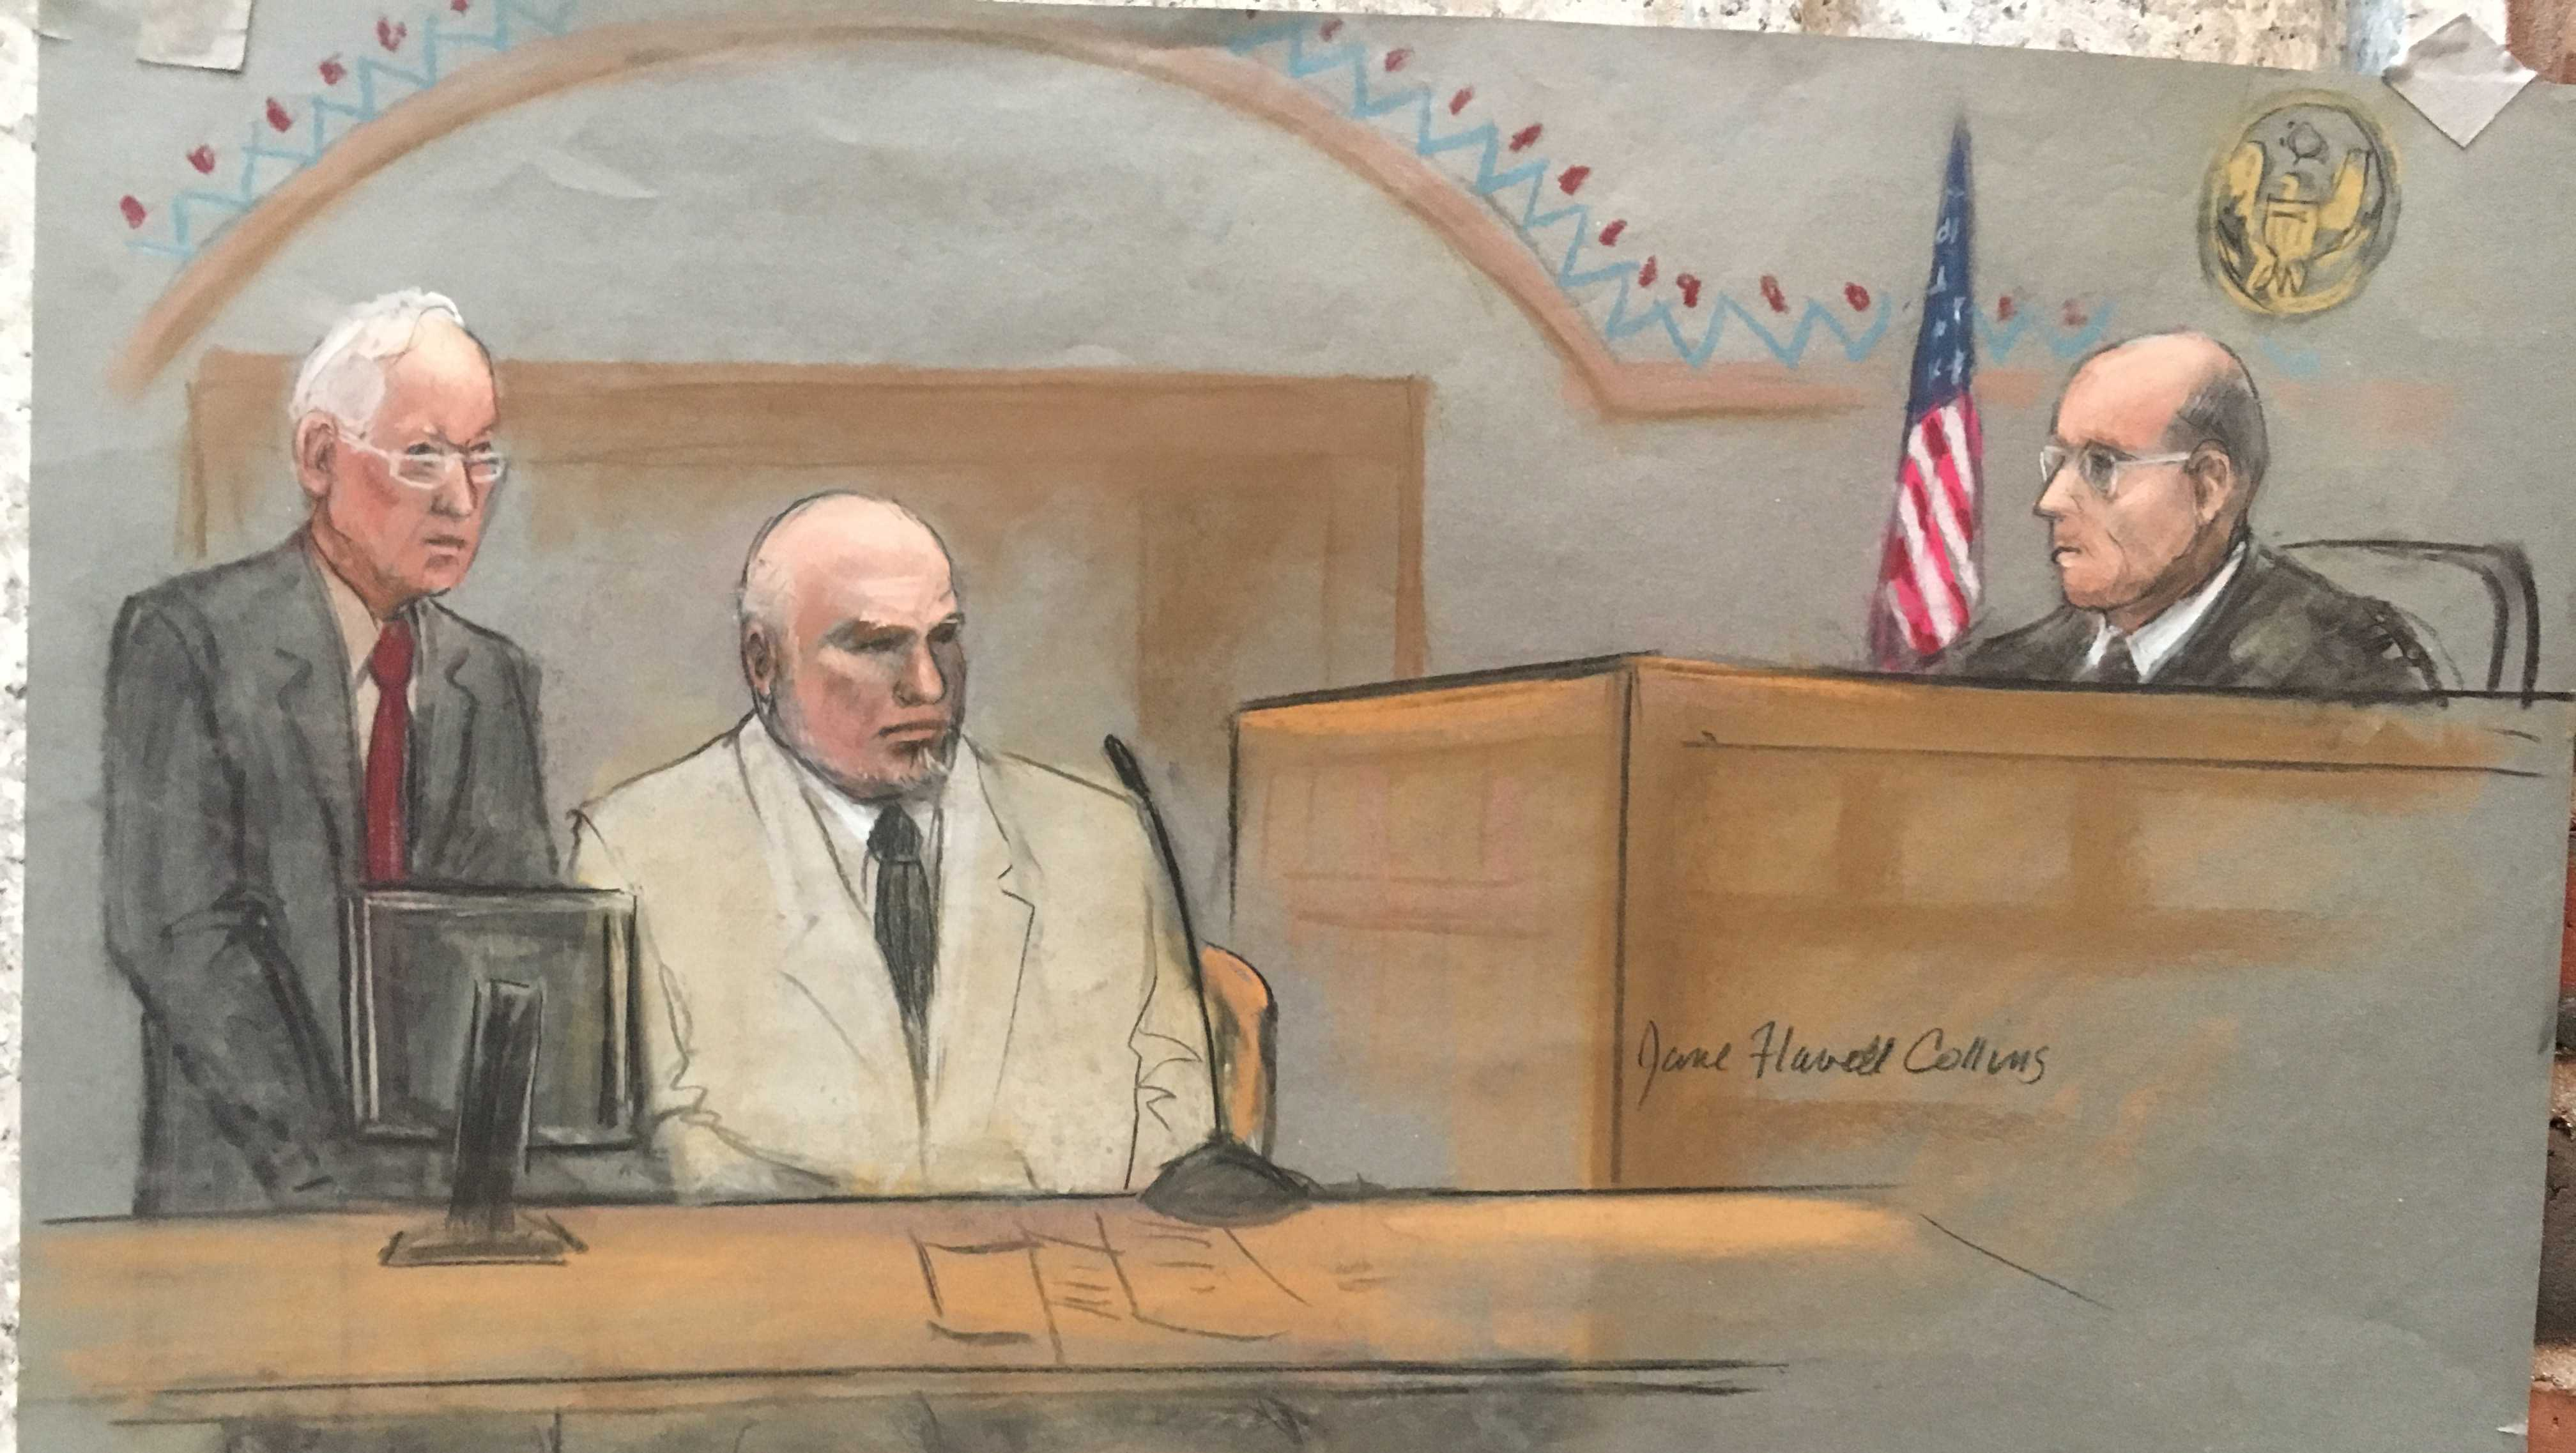 Gary Lee Sampson courtroom sketch